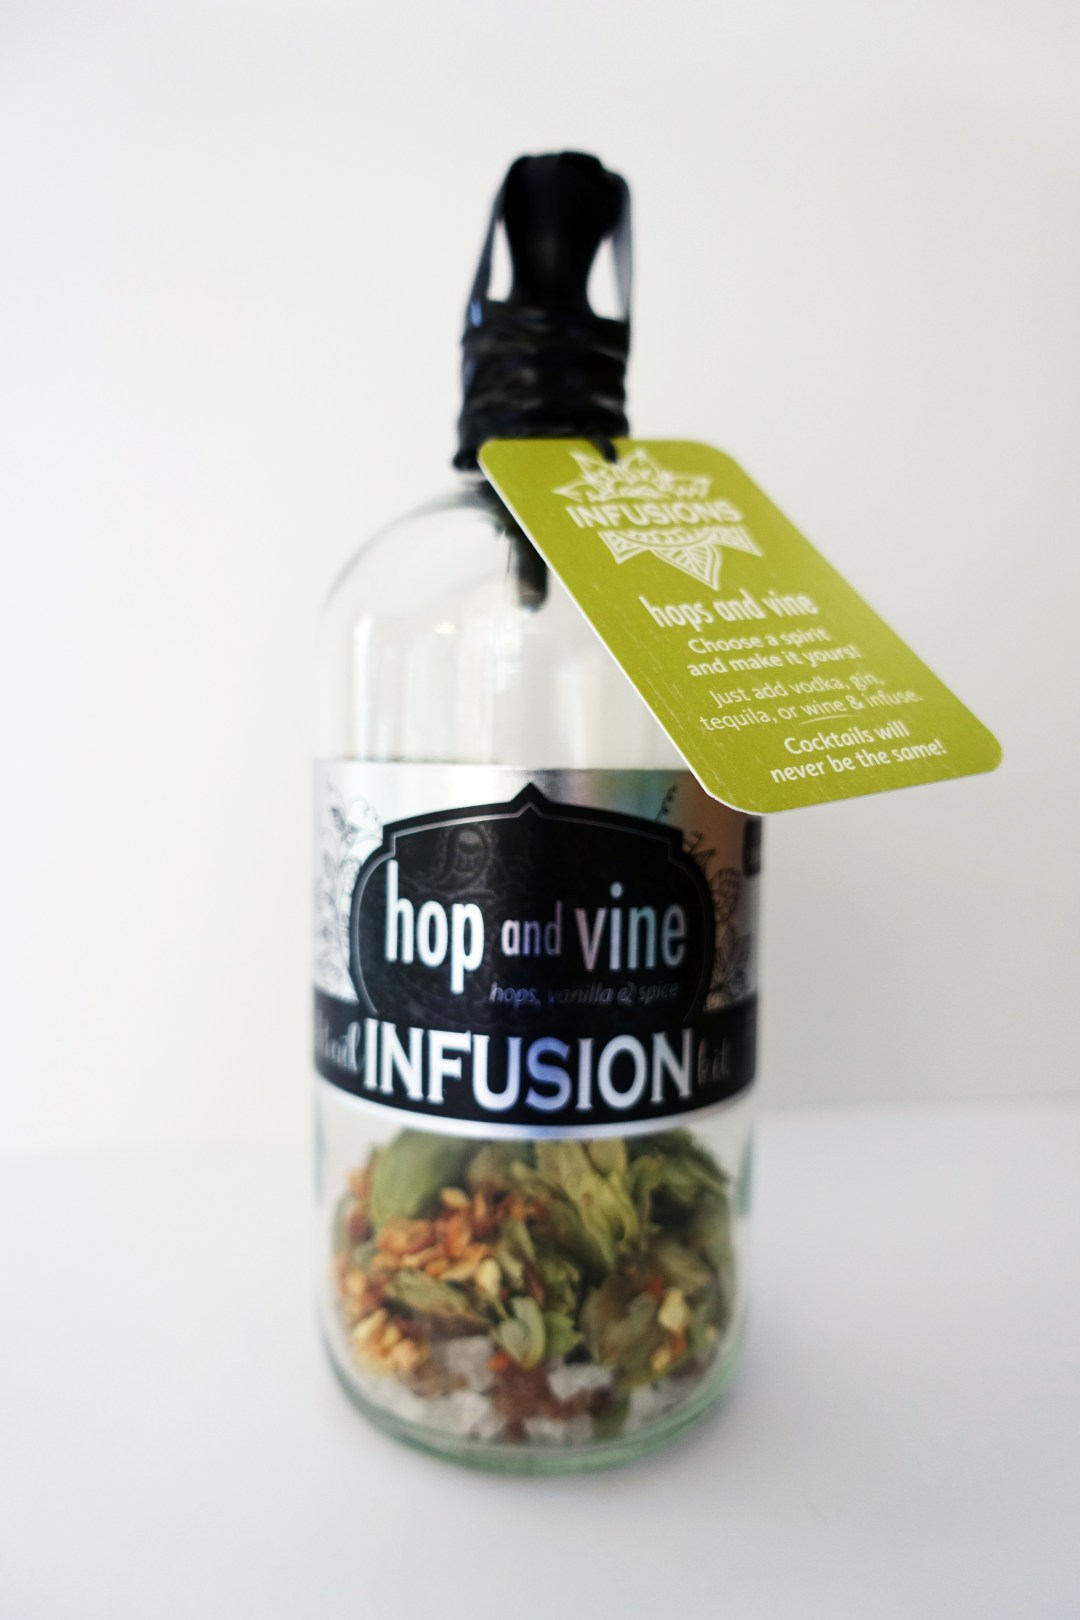 rokz Hop and Vine Infusion Kit